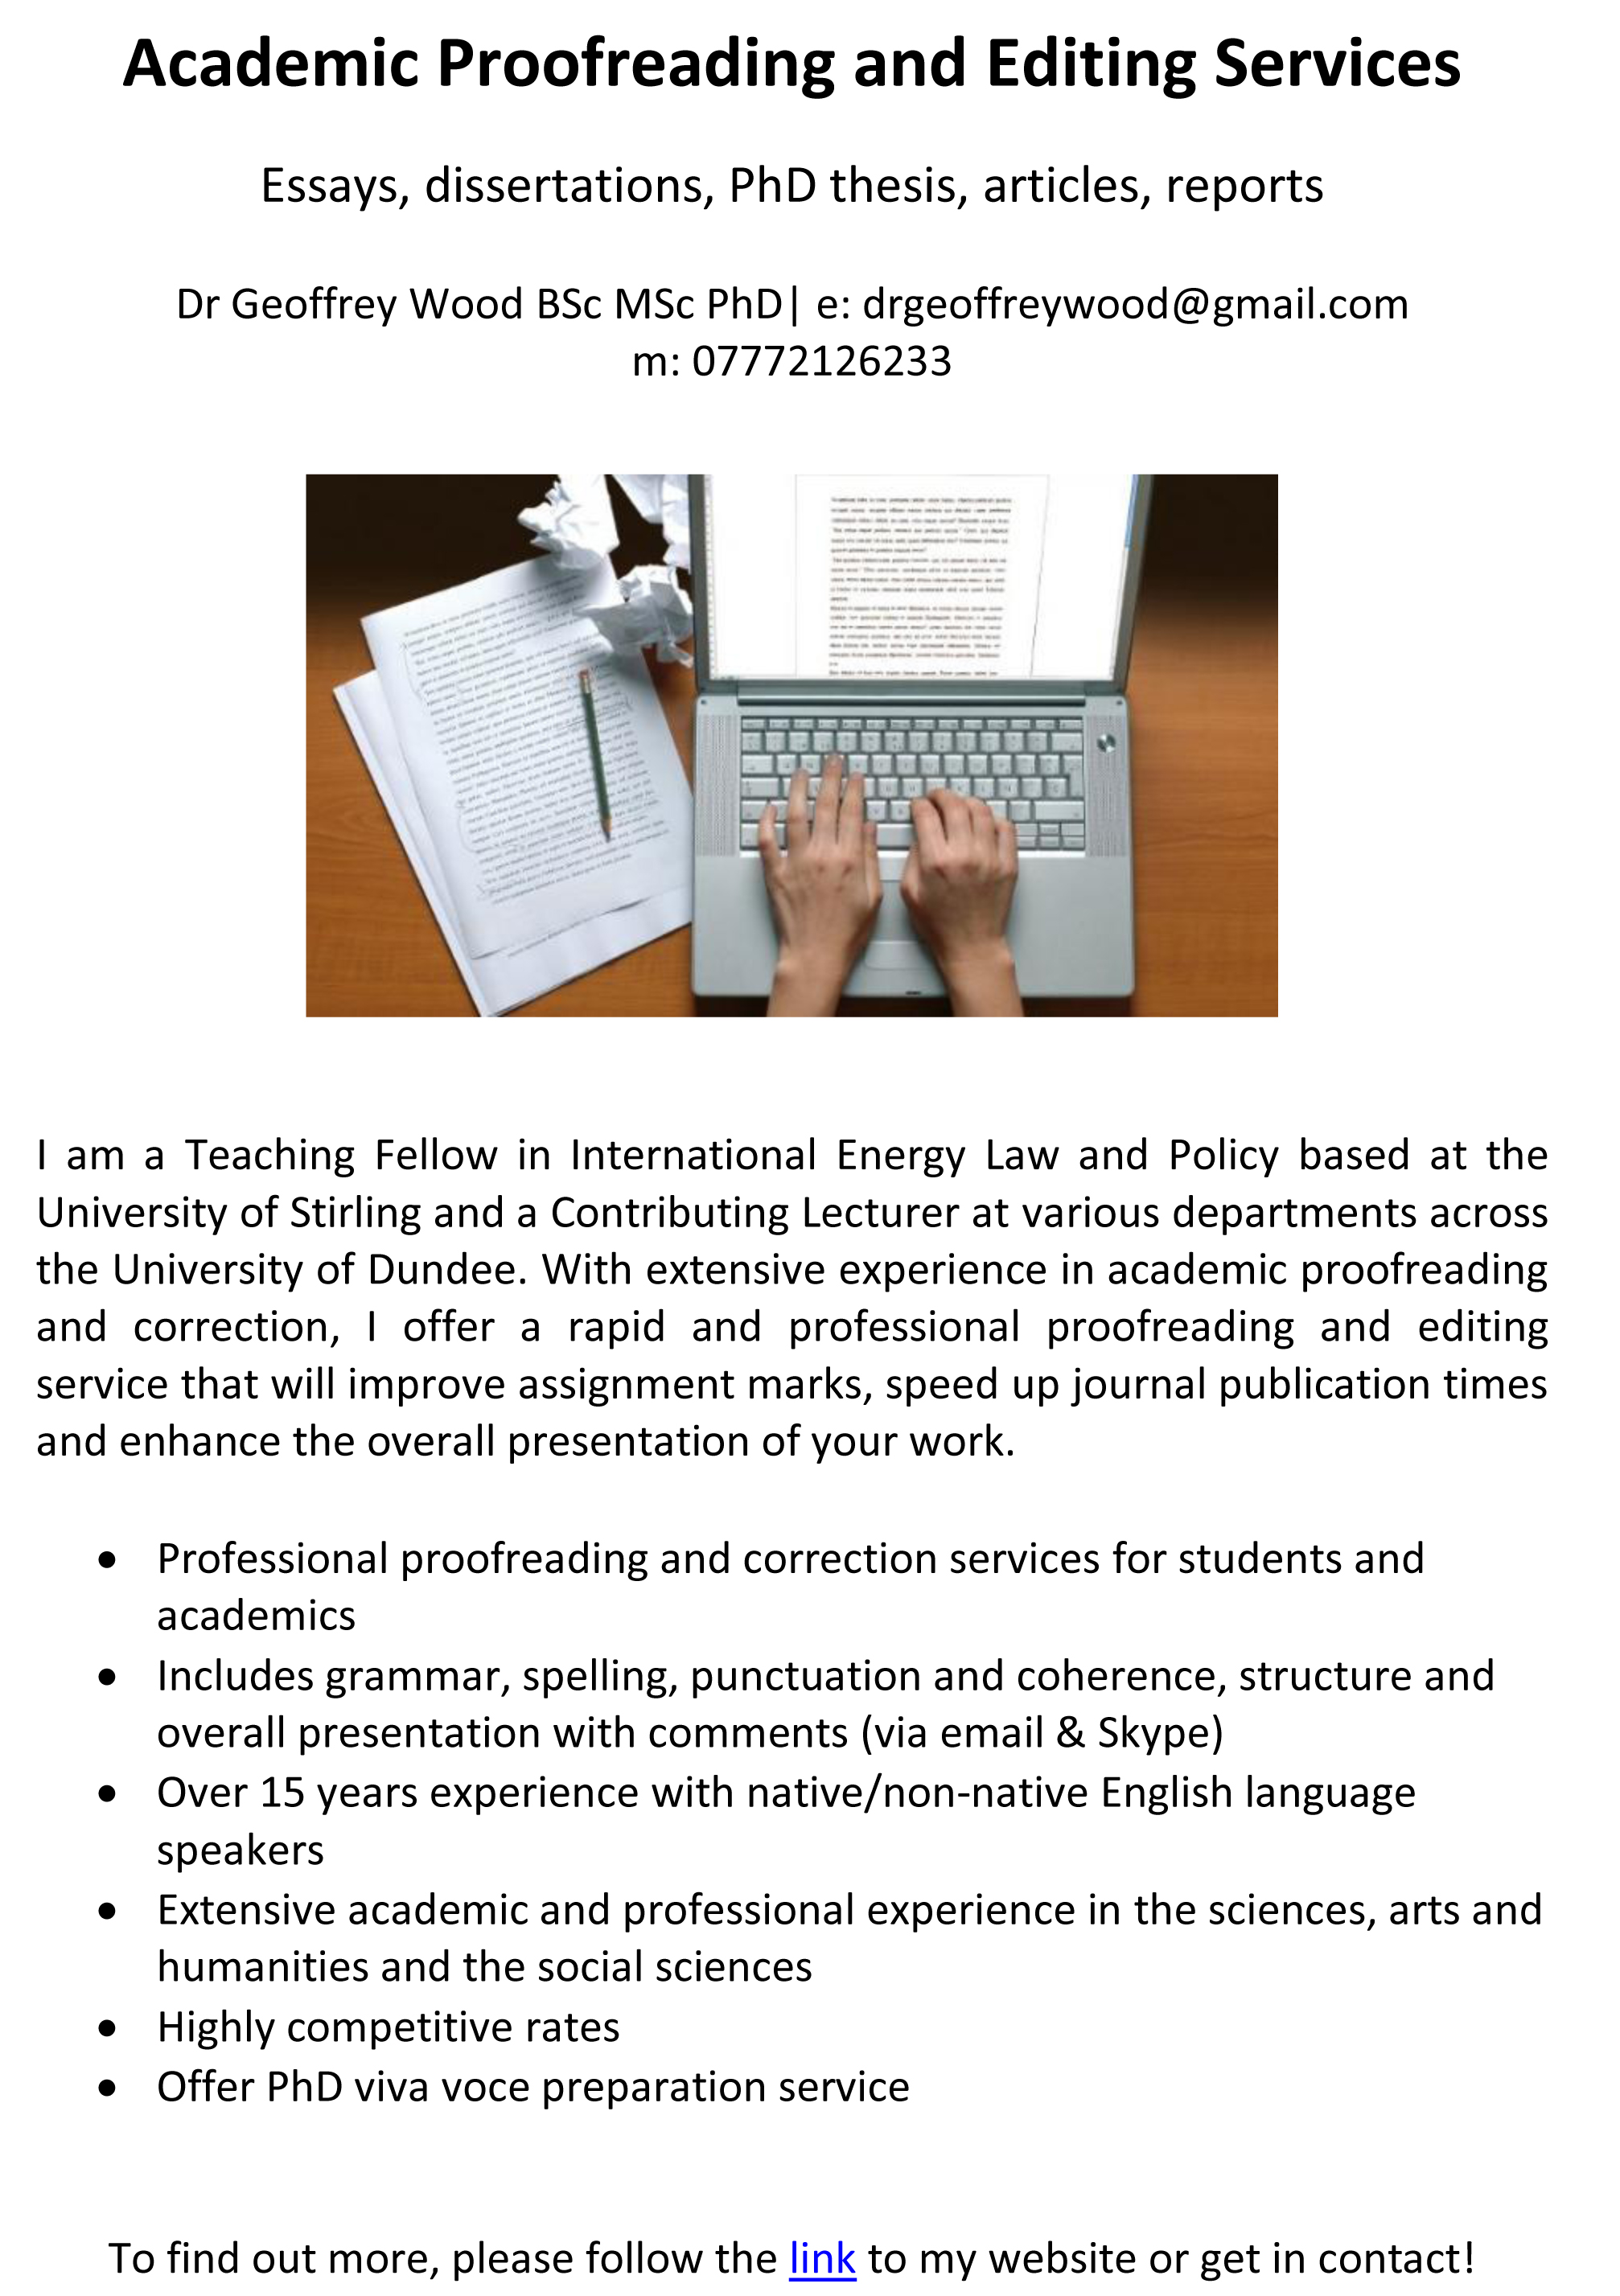 academic editing services nzs